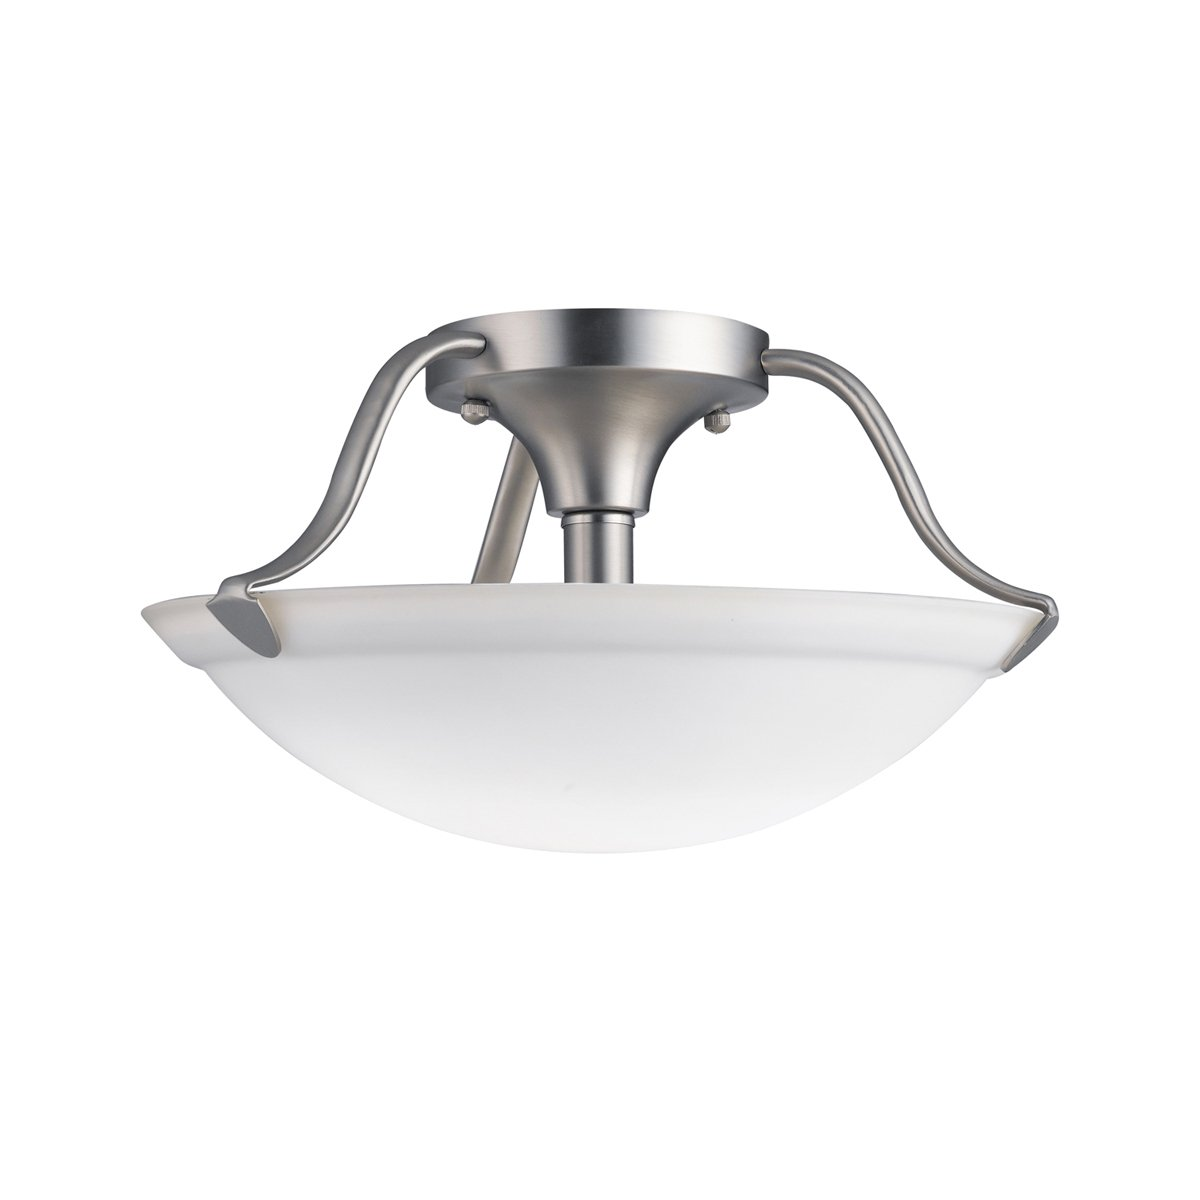 Kichler brushed nickel wall mt 1lt incandescent kichler brushed nickel - 3620ni Transitional 2lt Semi Flush Brushed Nickel Finish With White Etched Glass Close To Ceiling Light Fixtures Amazon Com